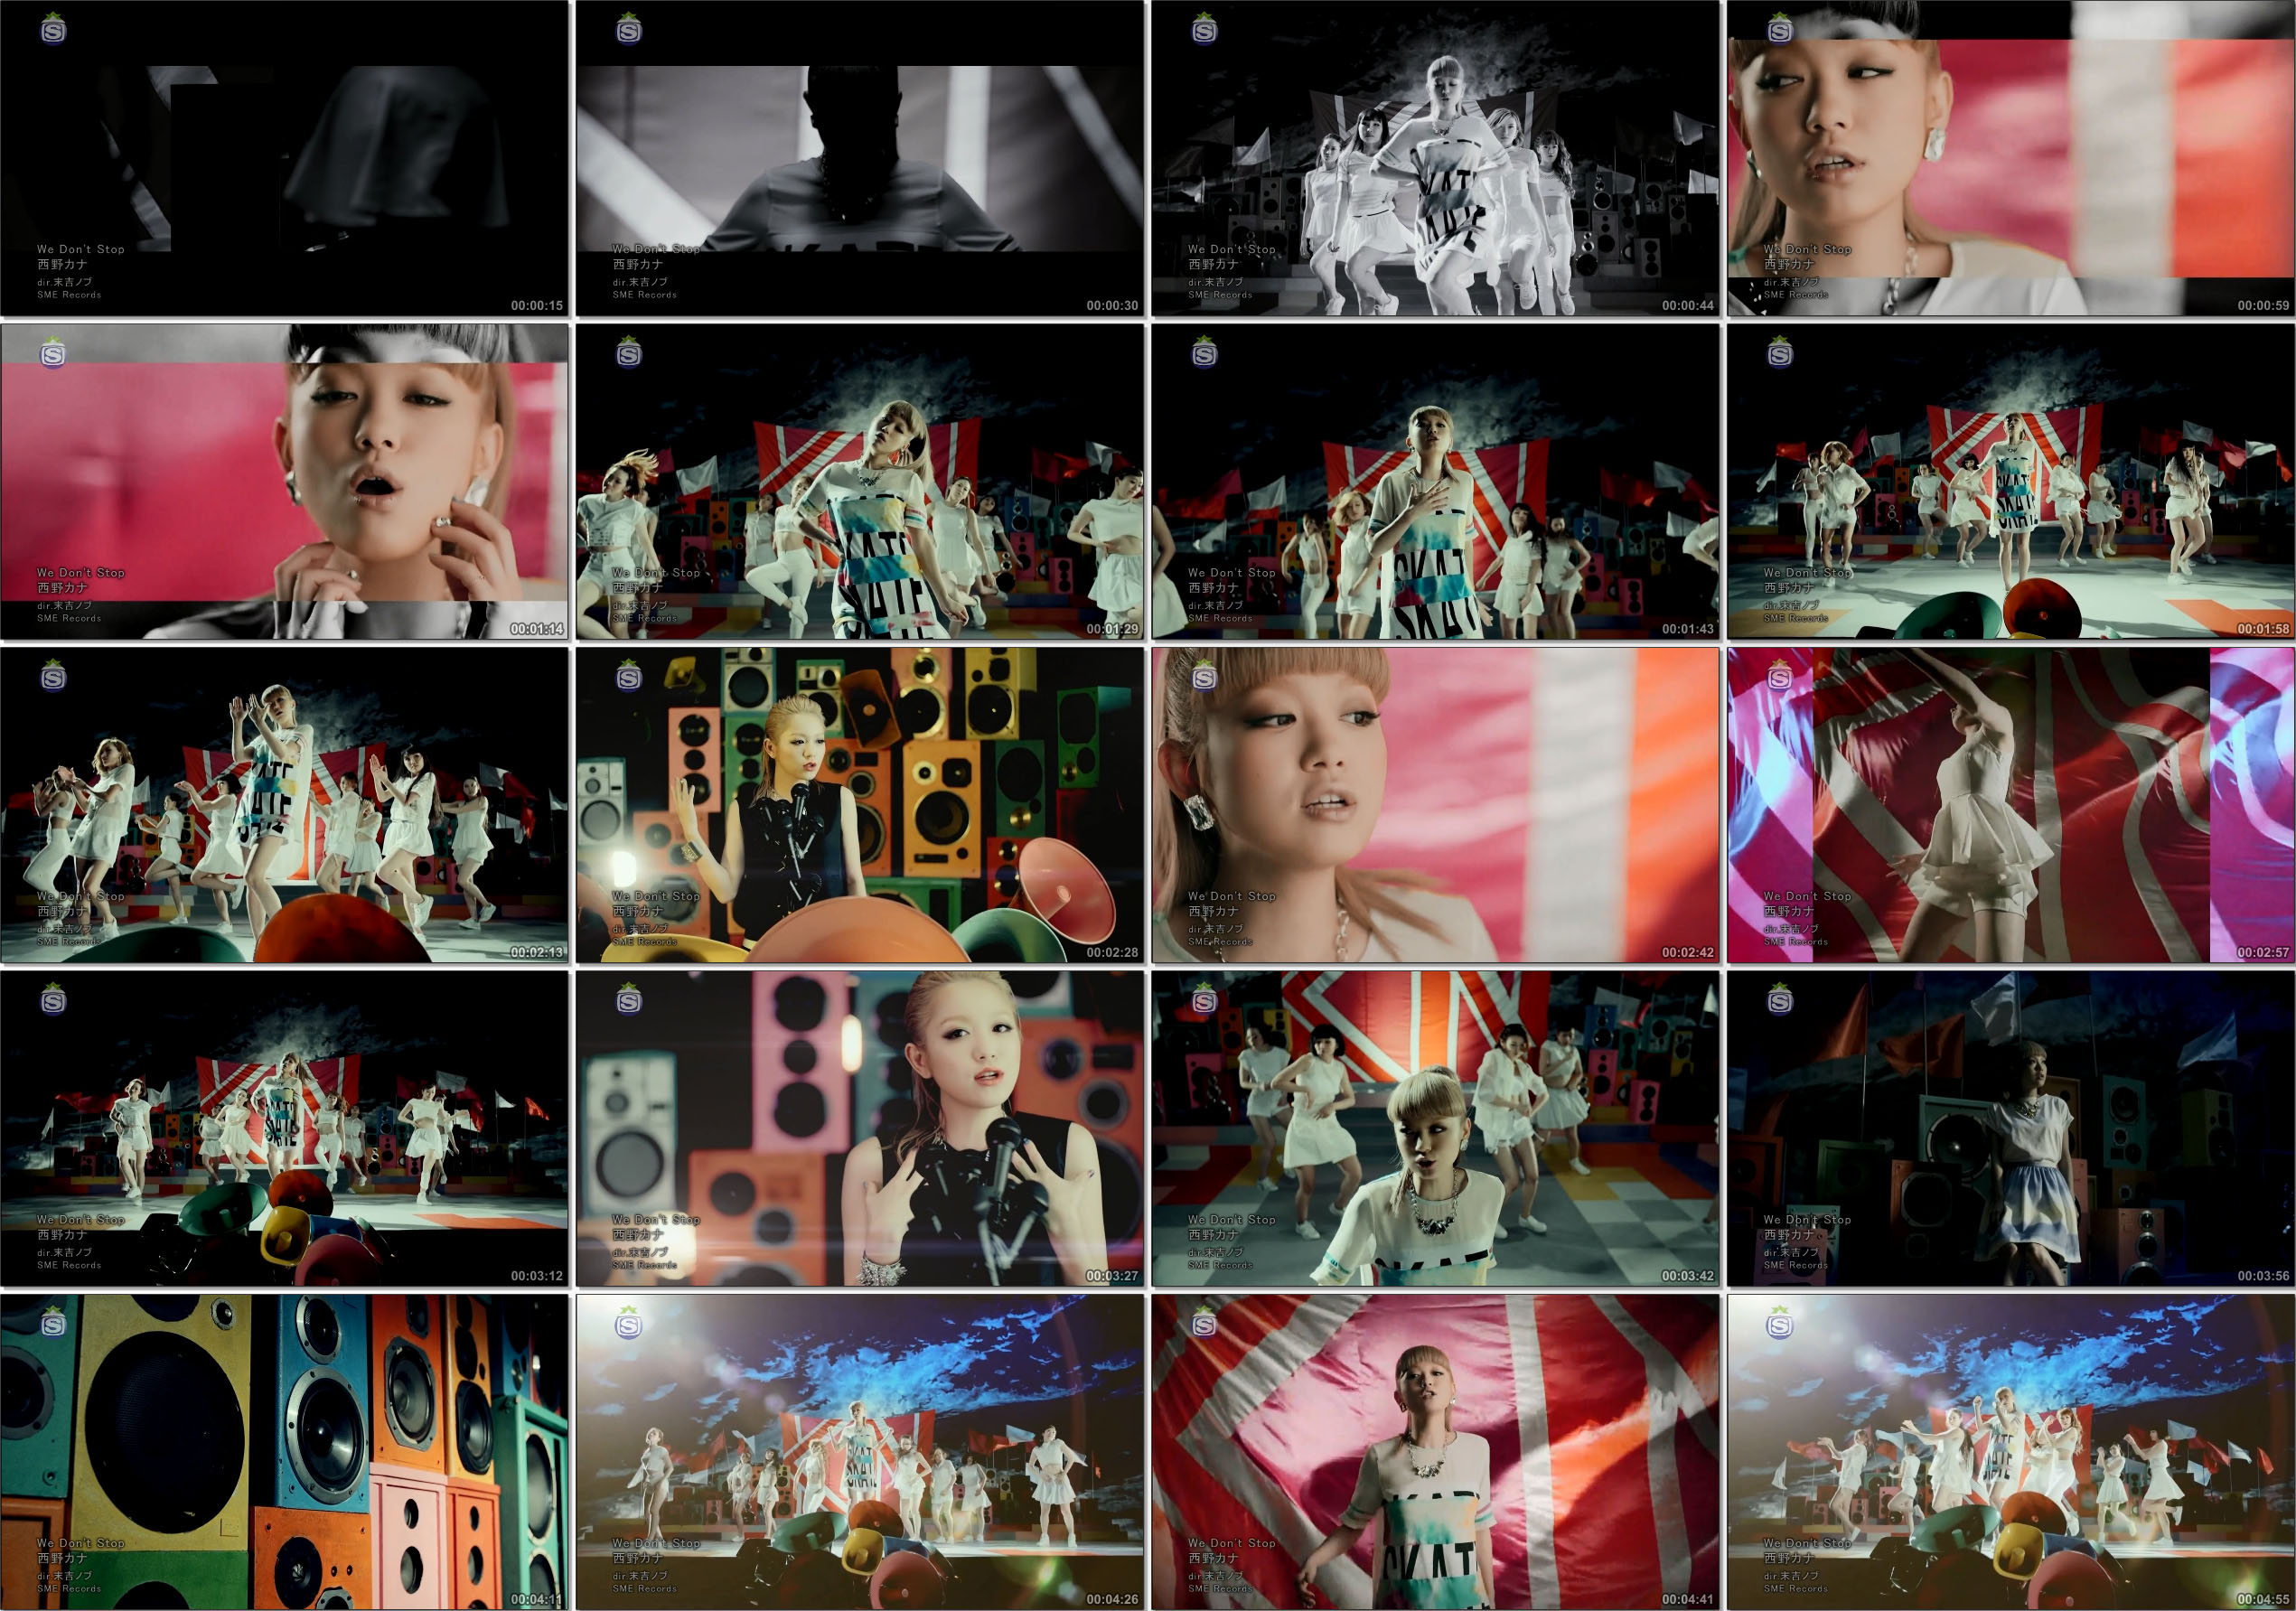 Kana Nishino - We Don't Stop [2014.05.21]